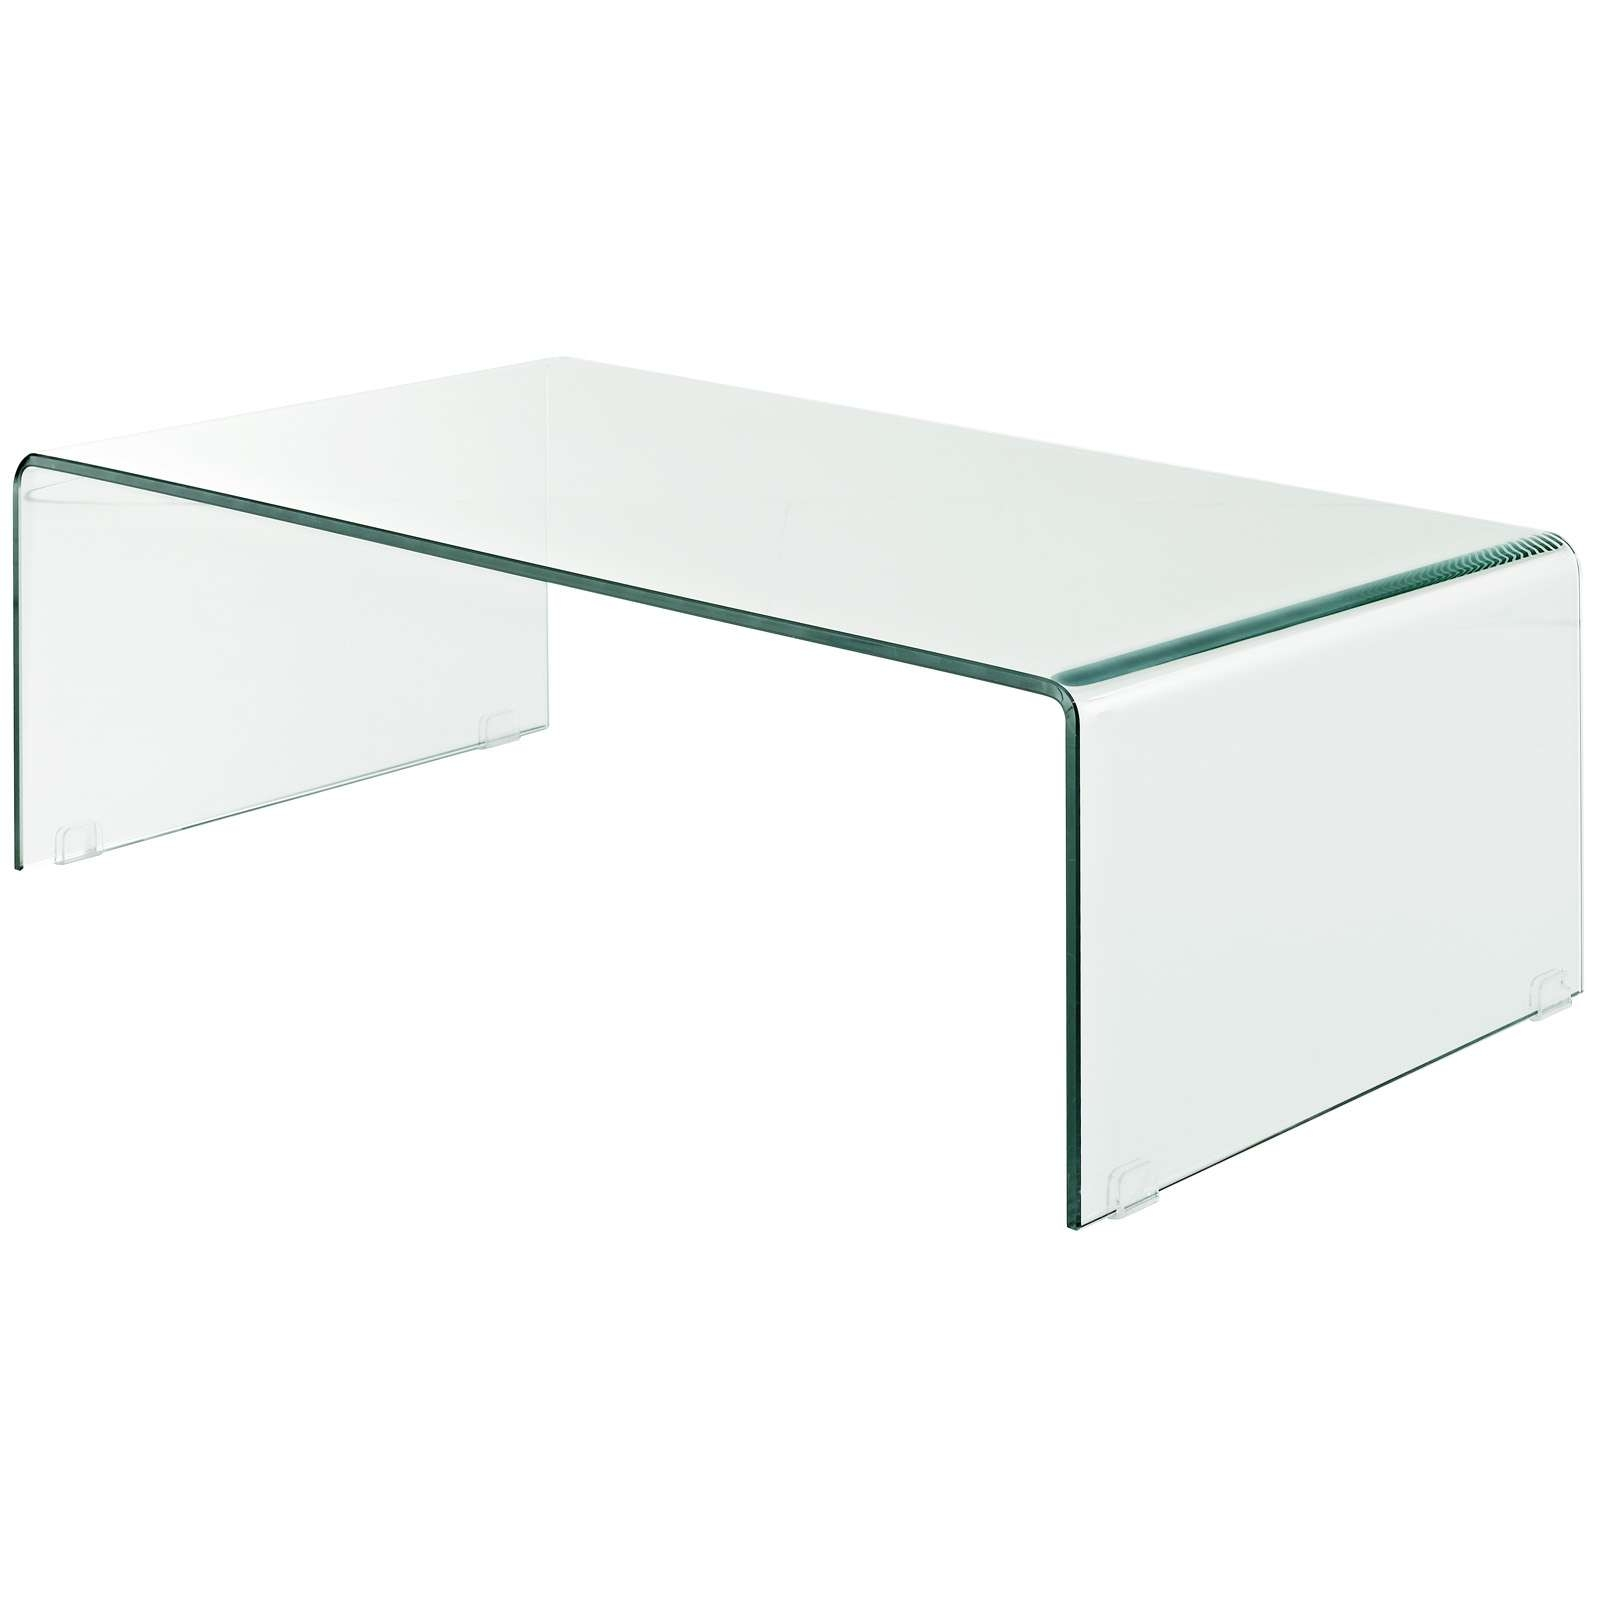 Decorations : Modern Furniture Store Deals Tags Tempered Clear With Regard To Well Known Transparent Glass Coffee Tables (View 10 of 20)